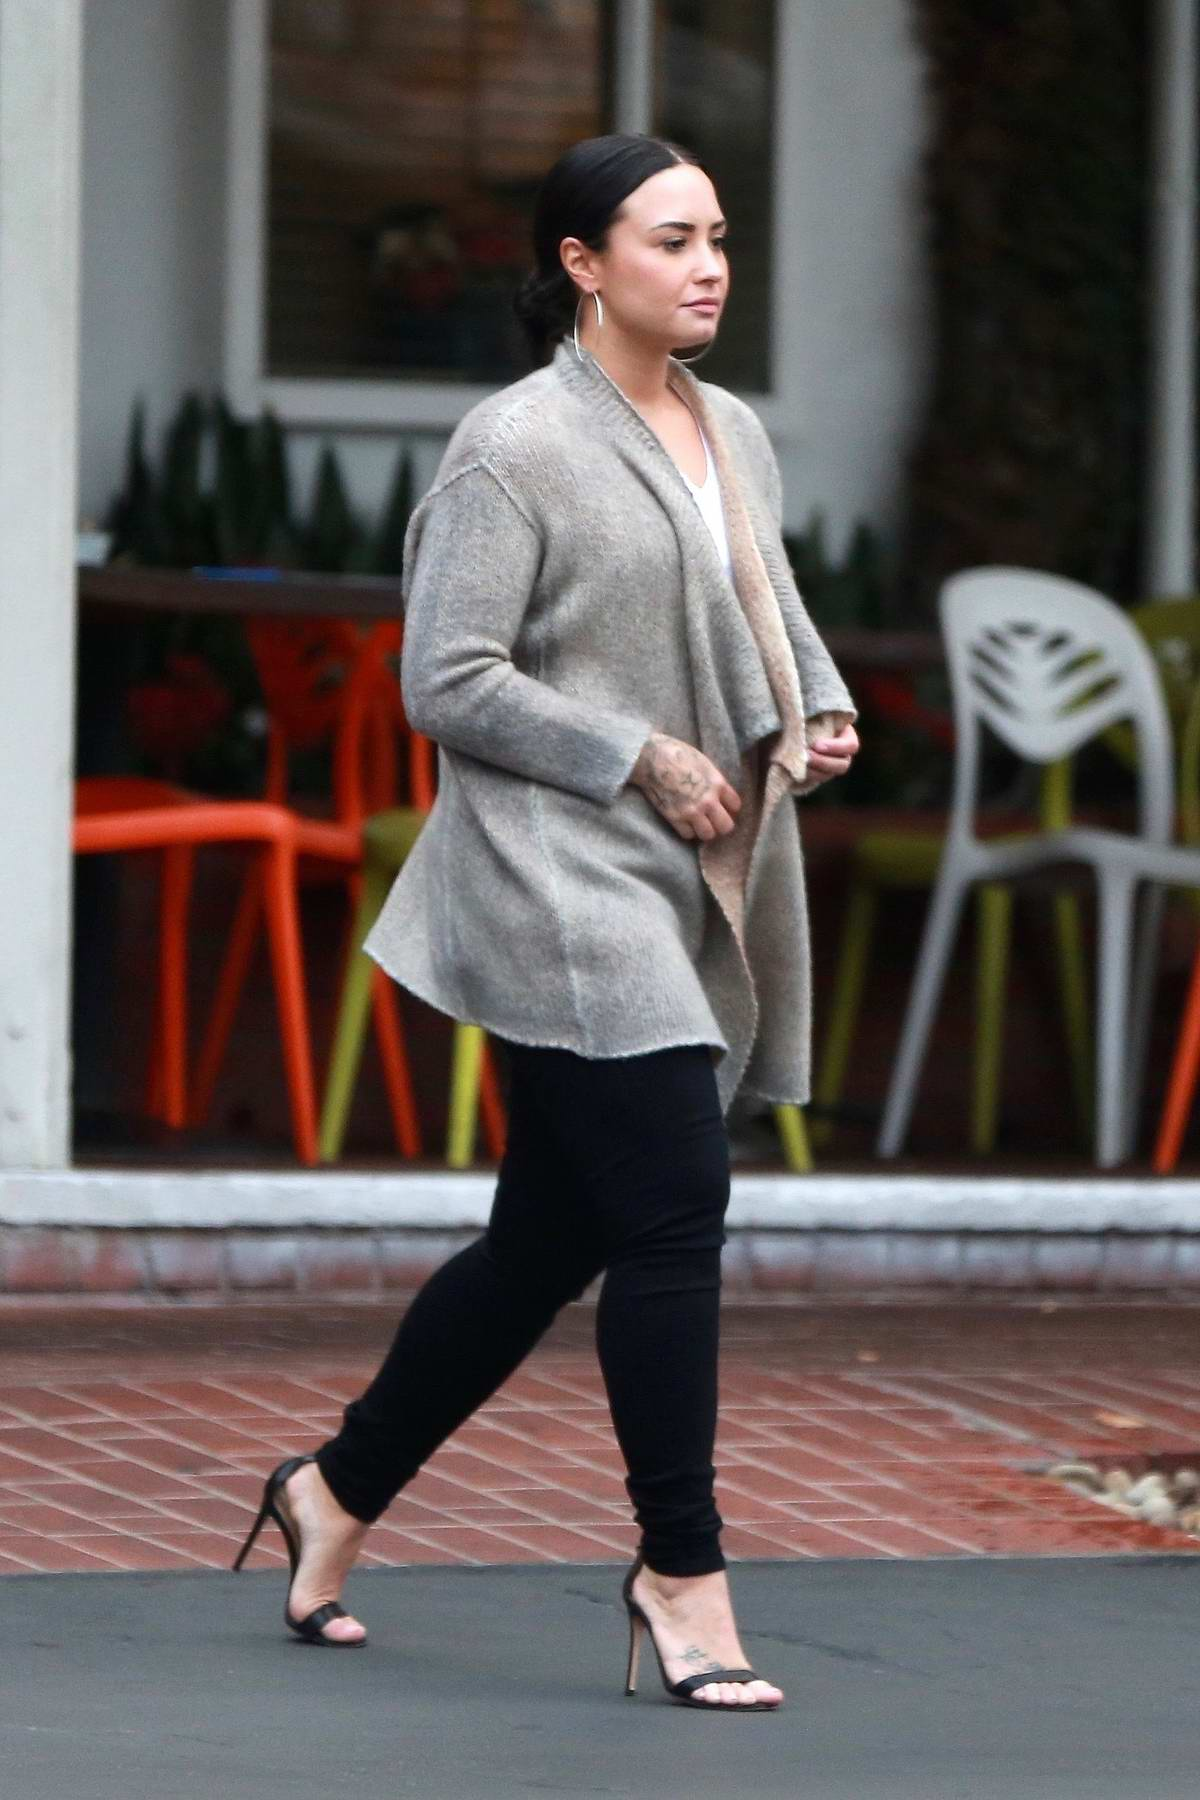 Demi Lovato spotted leaving Fred Segal wearing a cardigan and black skinny jeans, West Hollywood, Los Angeles